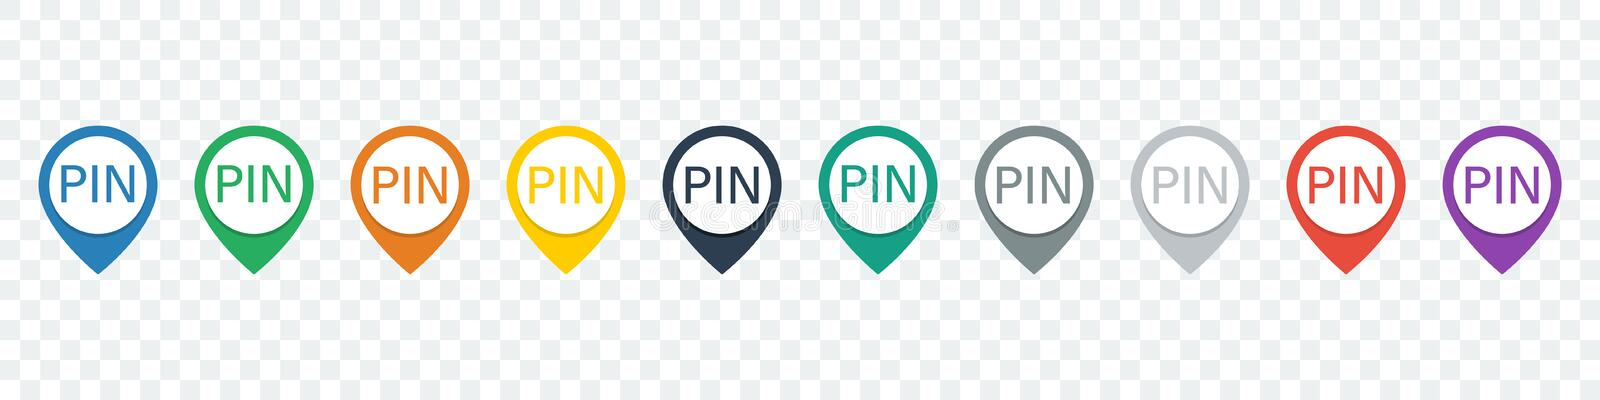 Set of location pin. Map pointers. Pin icons. Pointer icons royalty free illustration